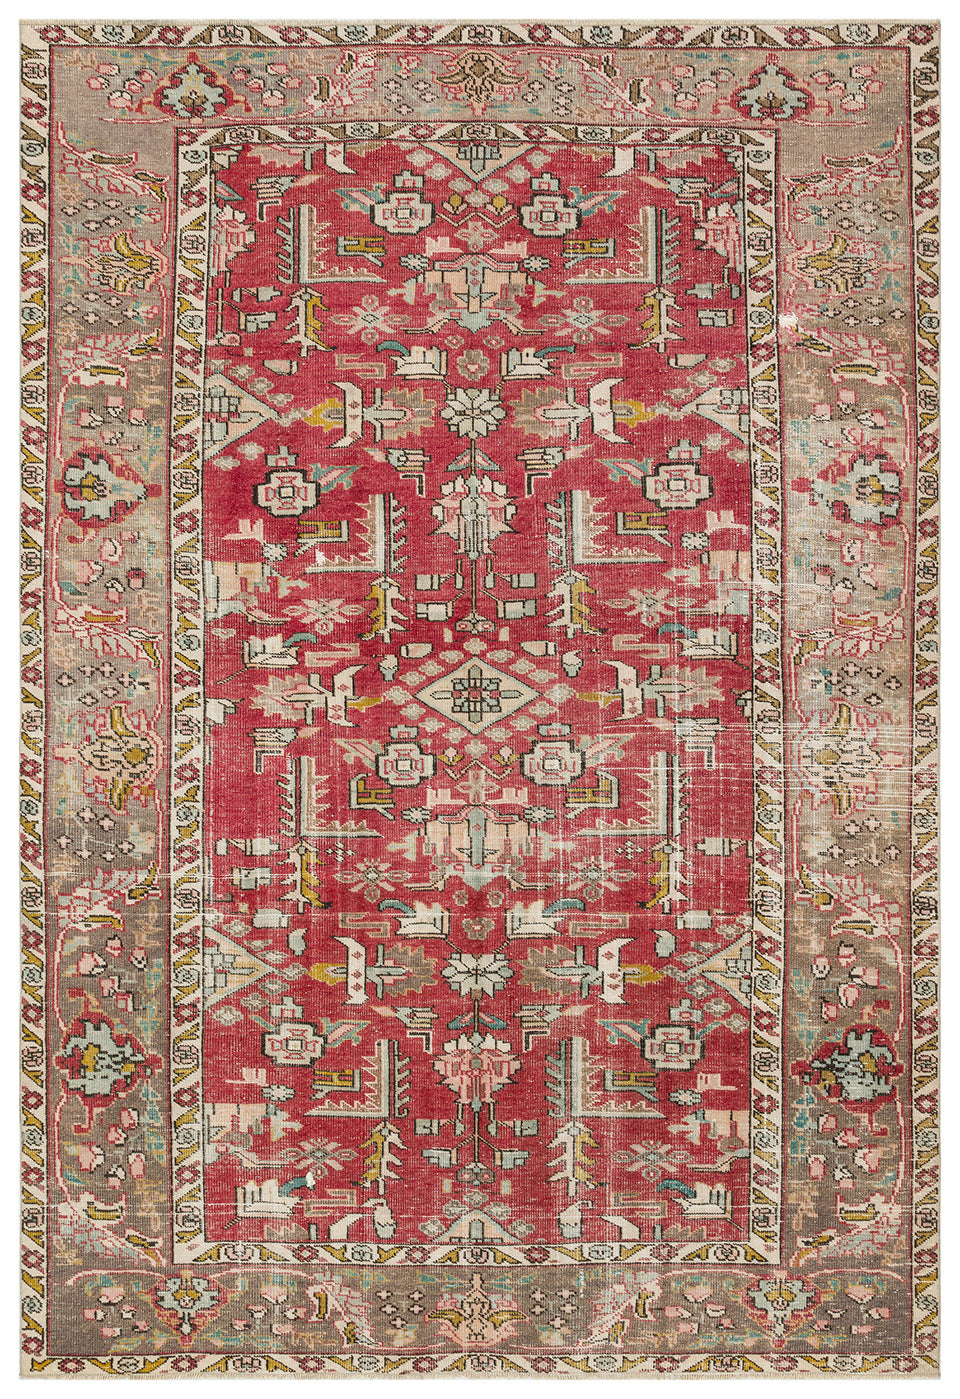 Vintage Turkish Rug, GA34981